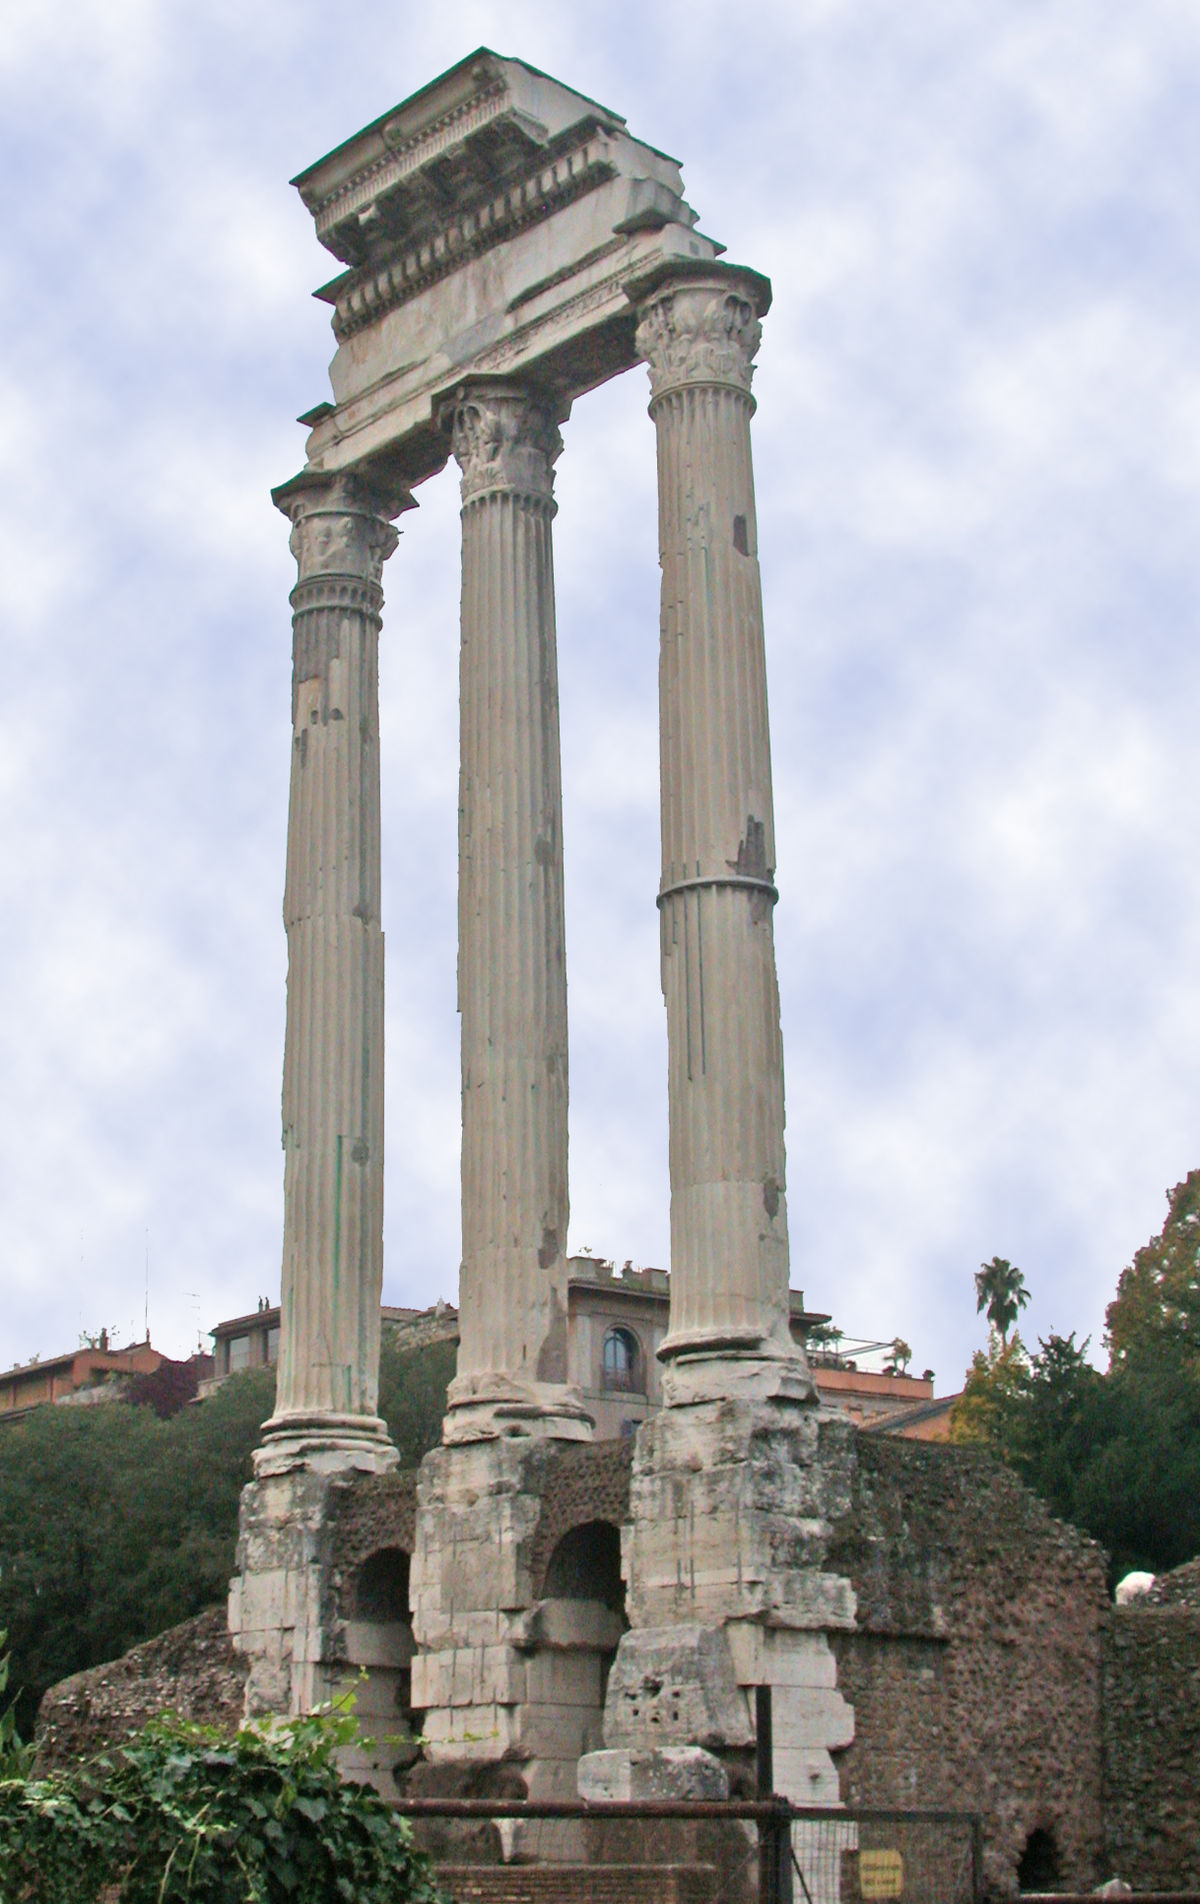 Temple of Castor and Pollux - Wikipedia